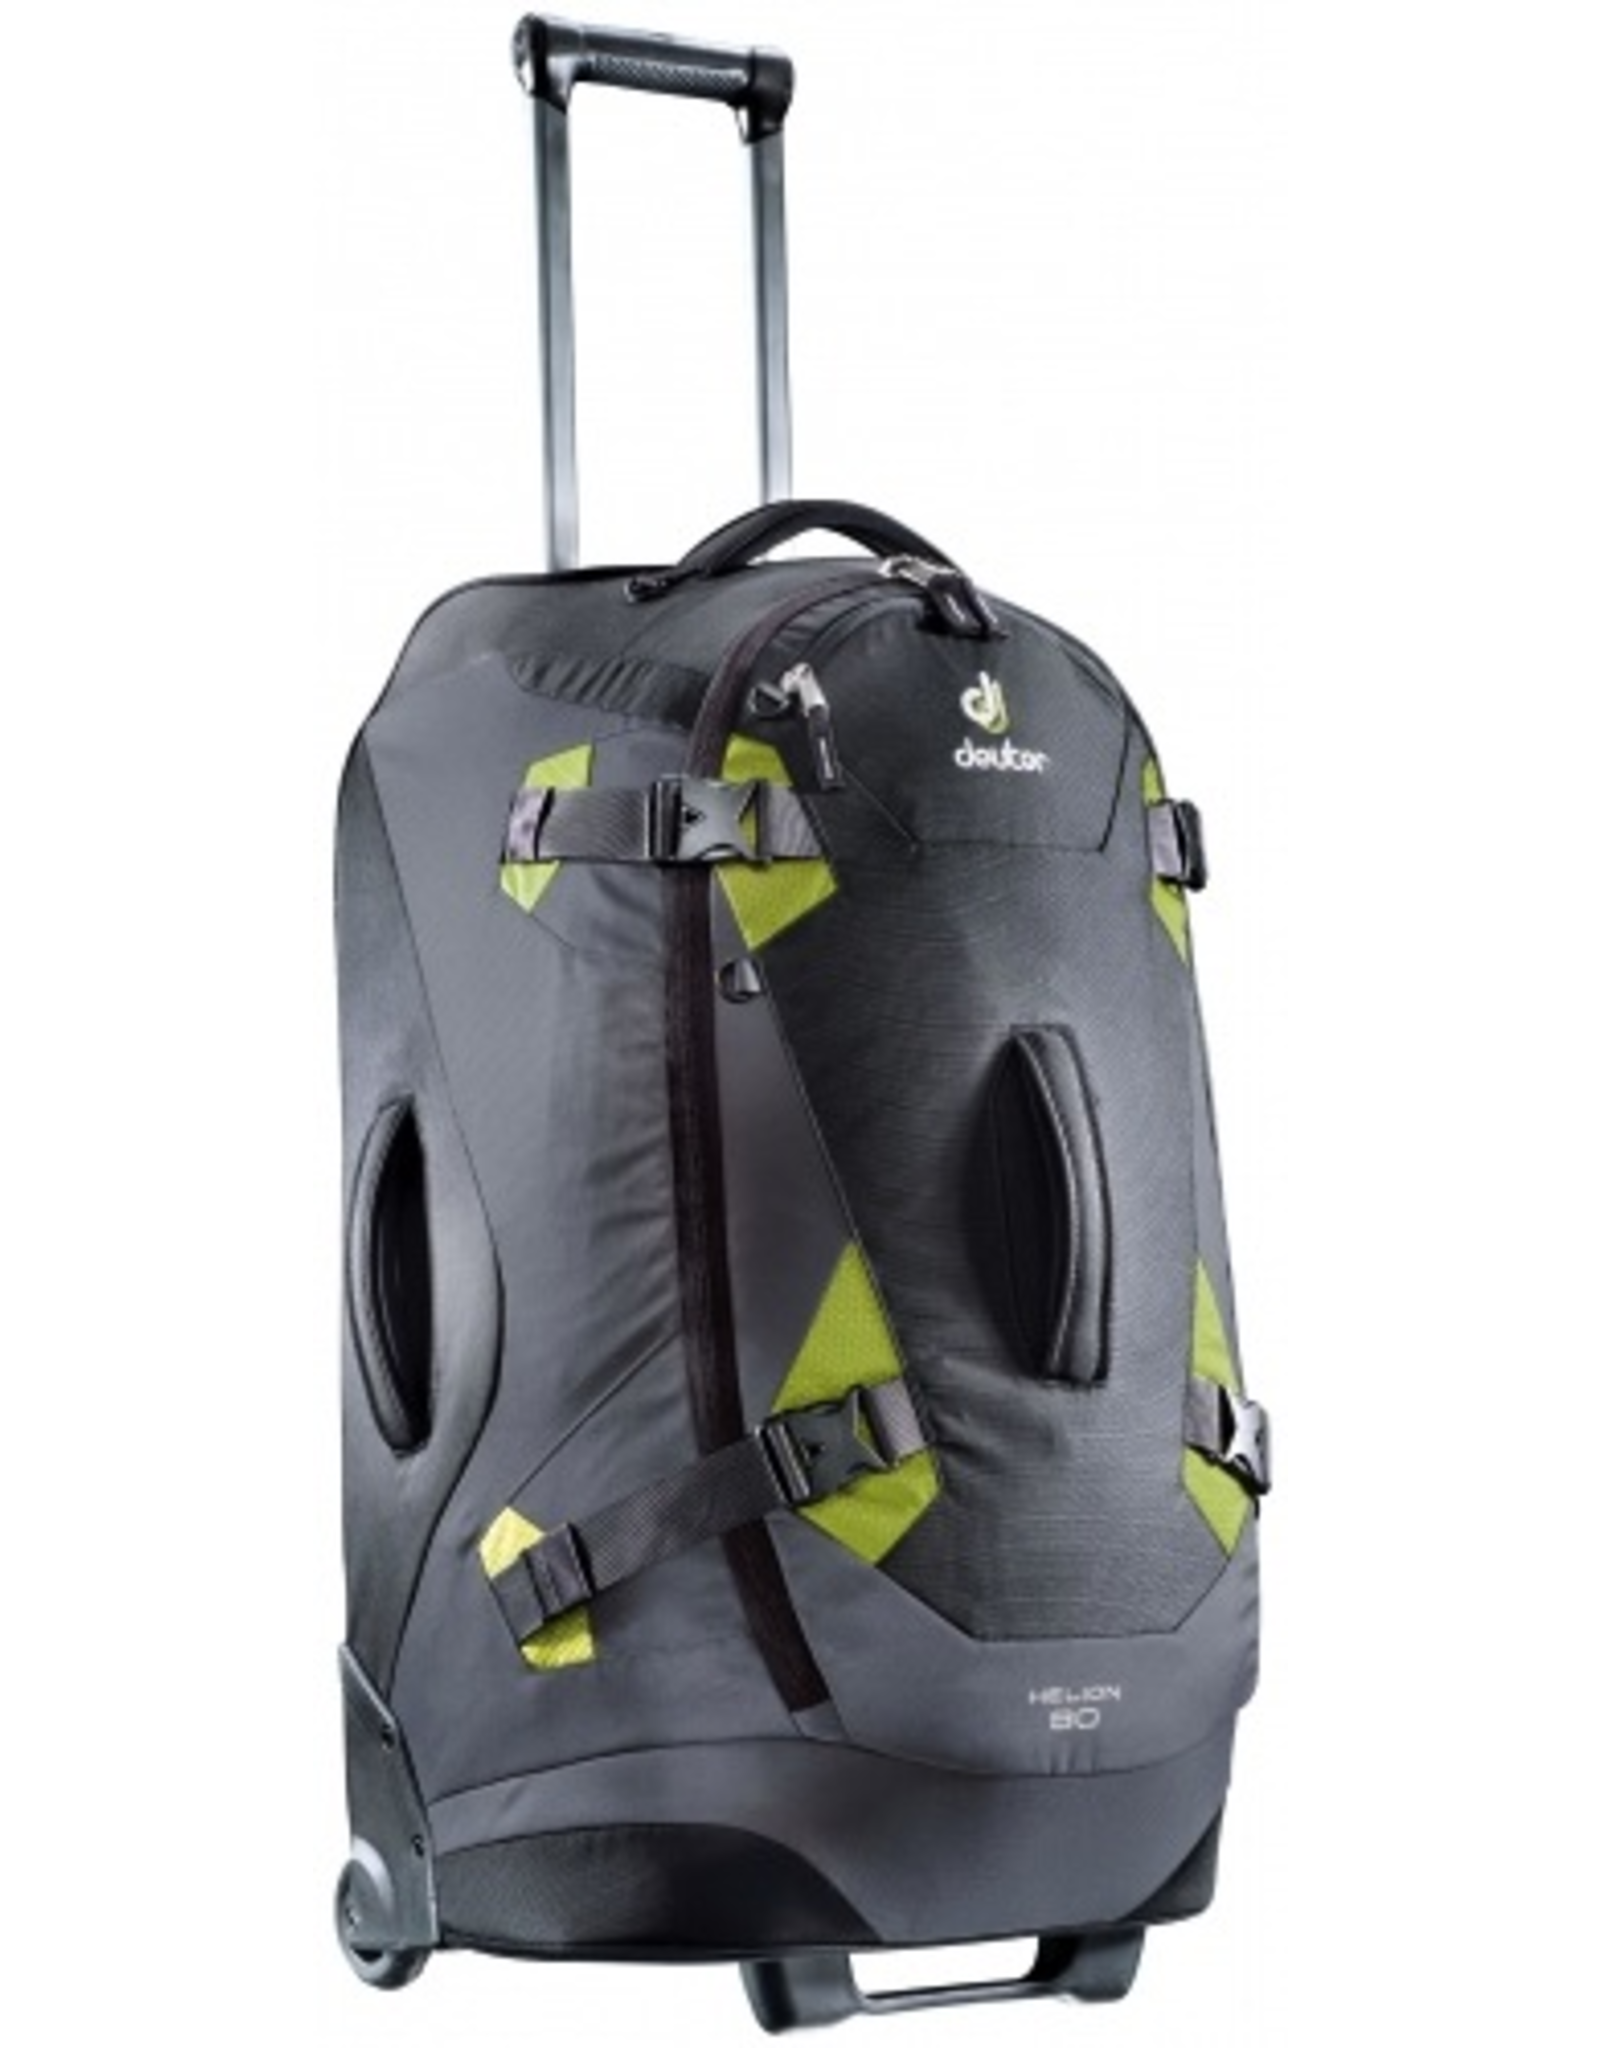 Deuter Deuter Helion 80L Roller Duffle Travel Pack, Black/Moss